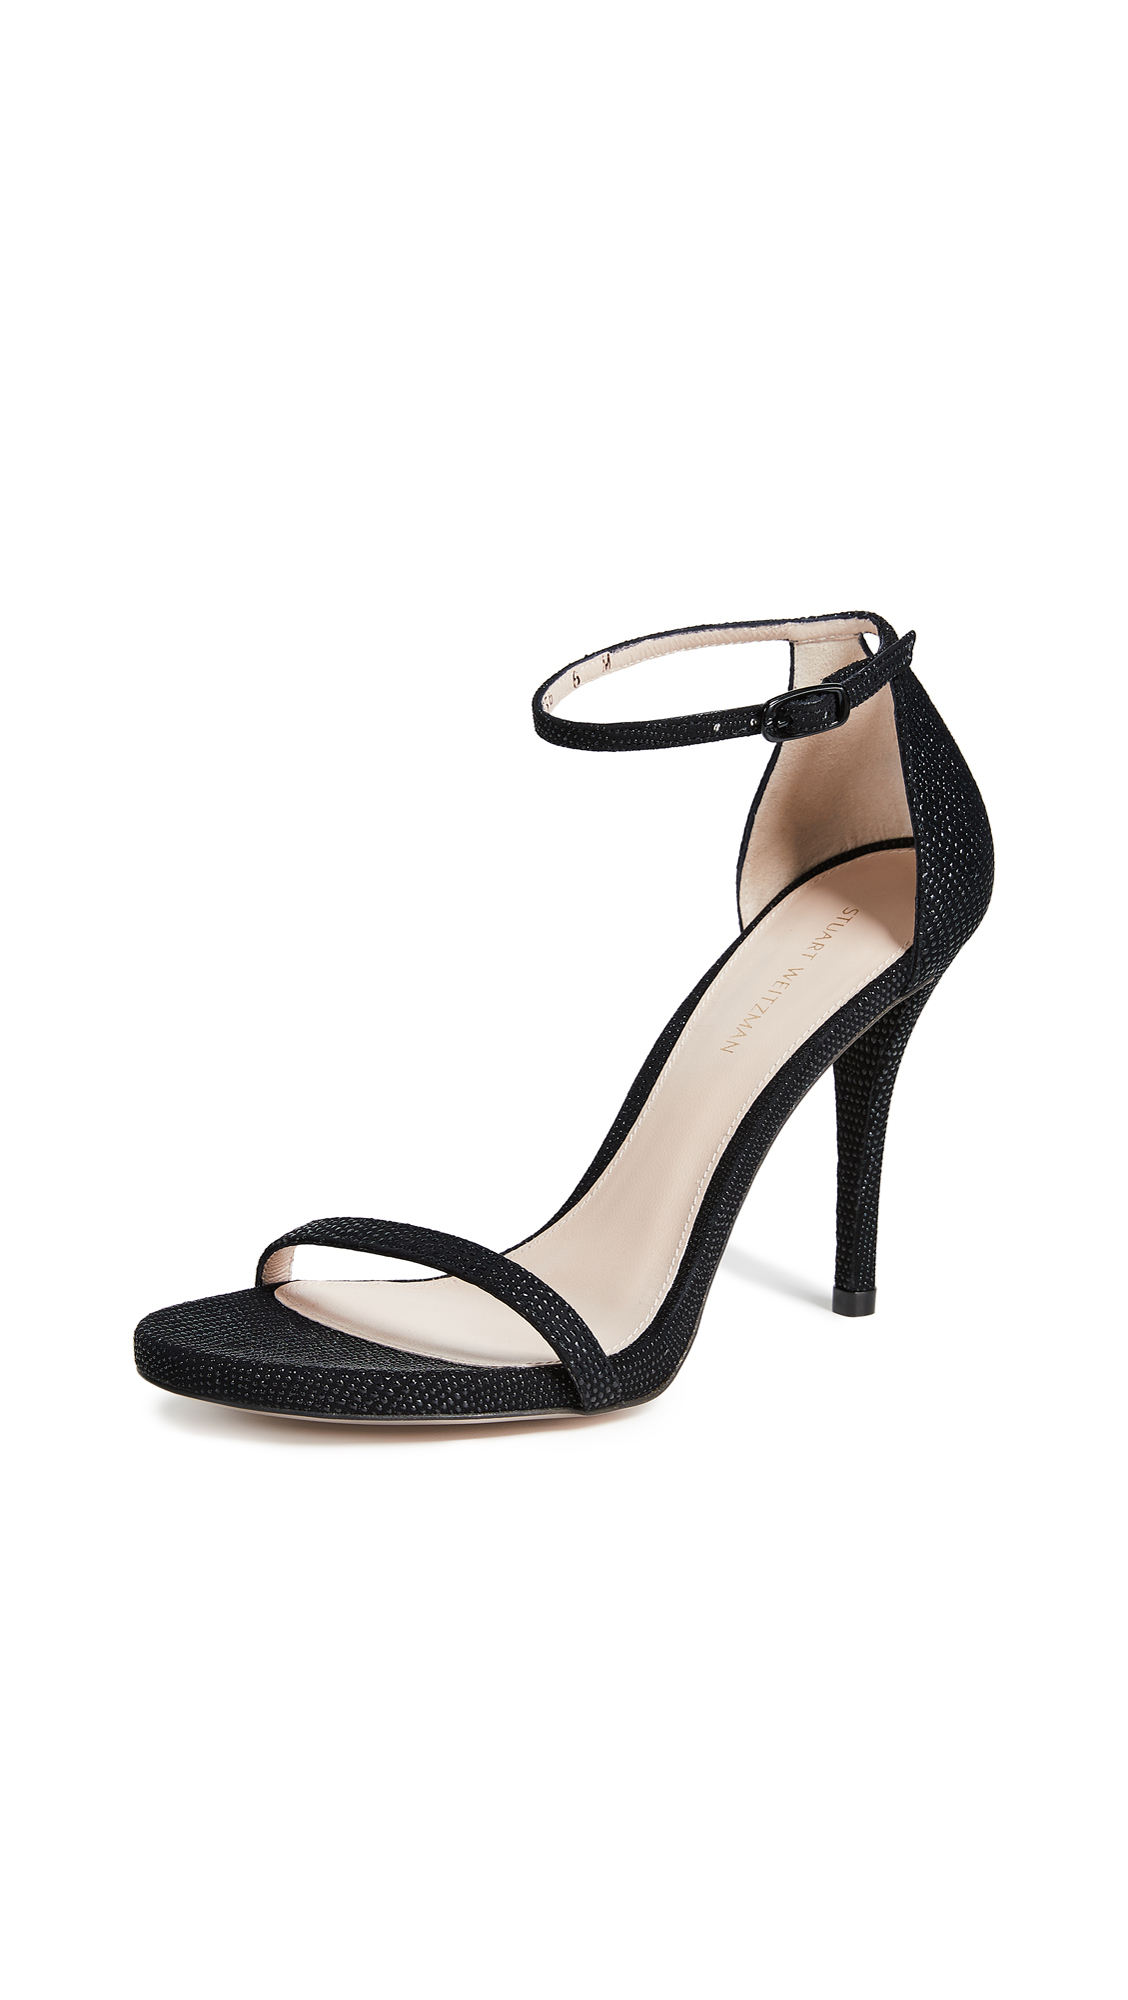 Stuart Weitzman Nudist Curved Heel Sandals - Black